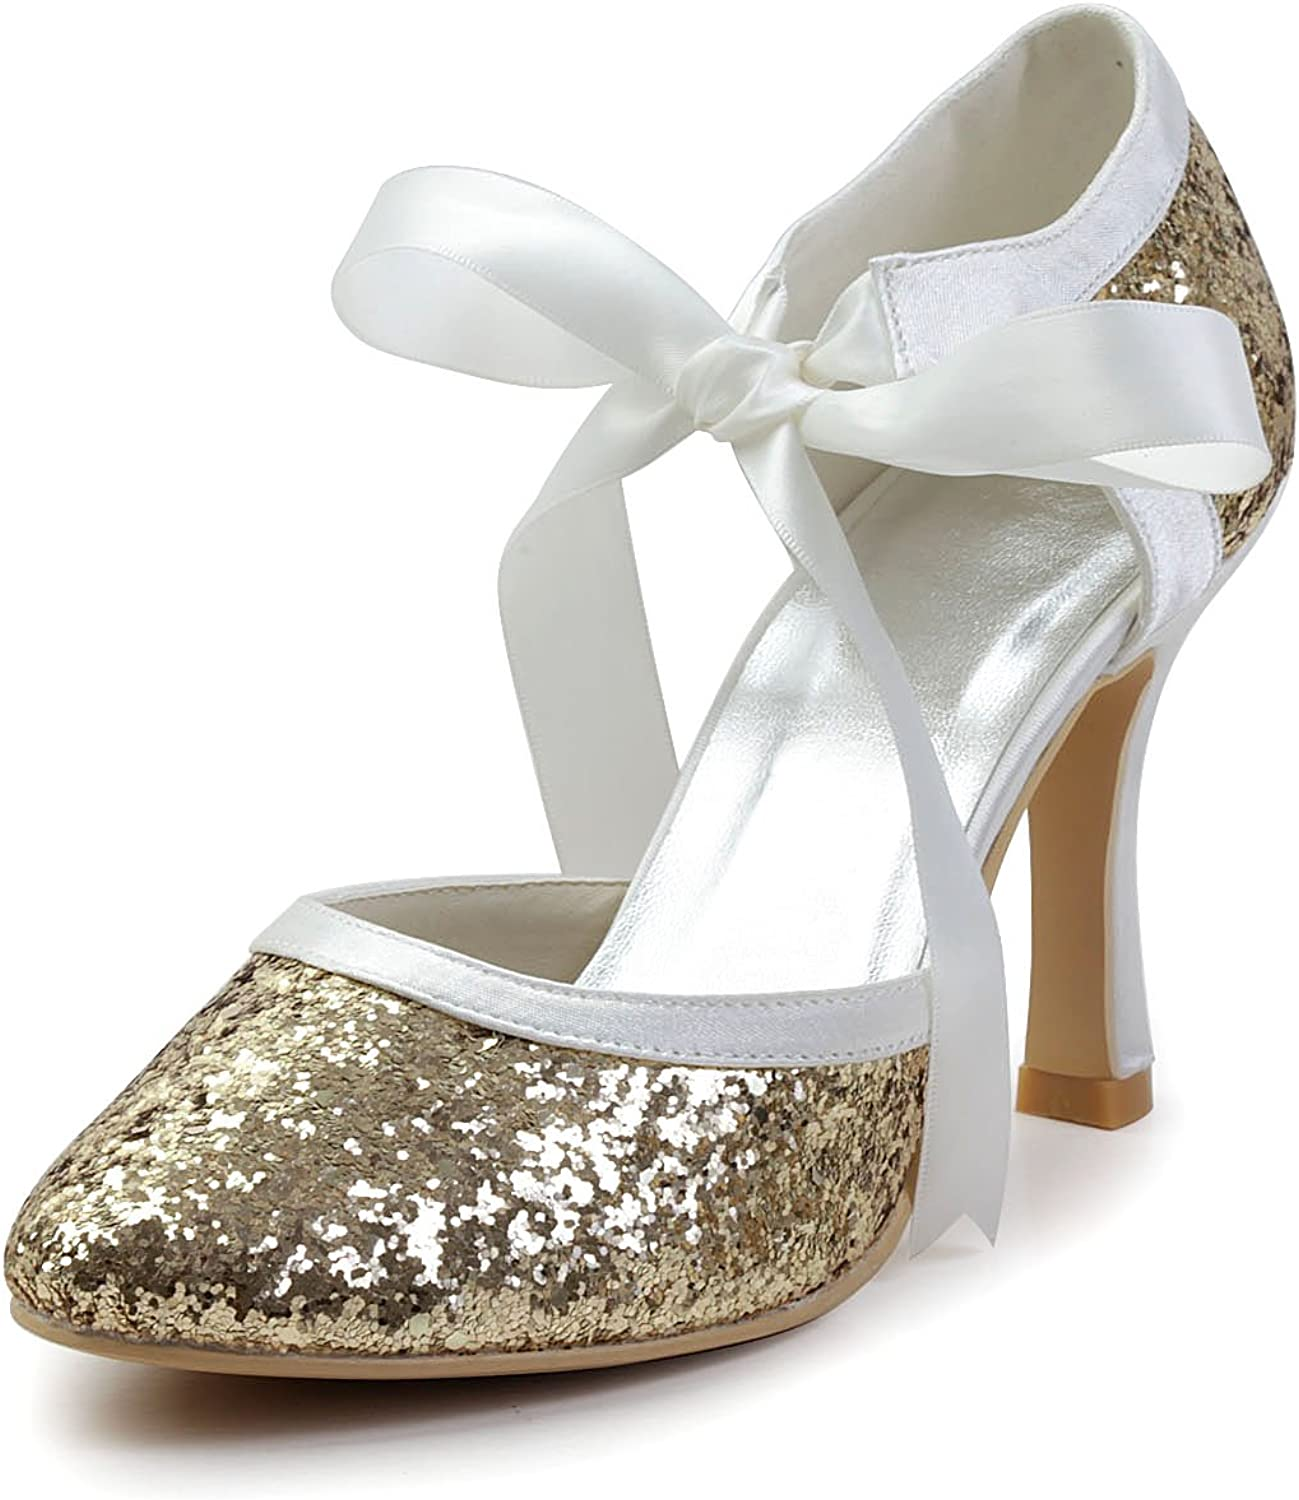 Minitoo GYAYL450 Womens Stiletto High Glitter Satin Evening Party Bridal Wedding Pumps shoes